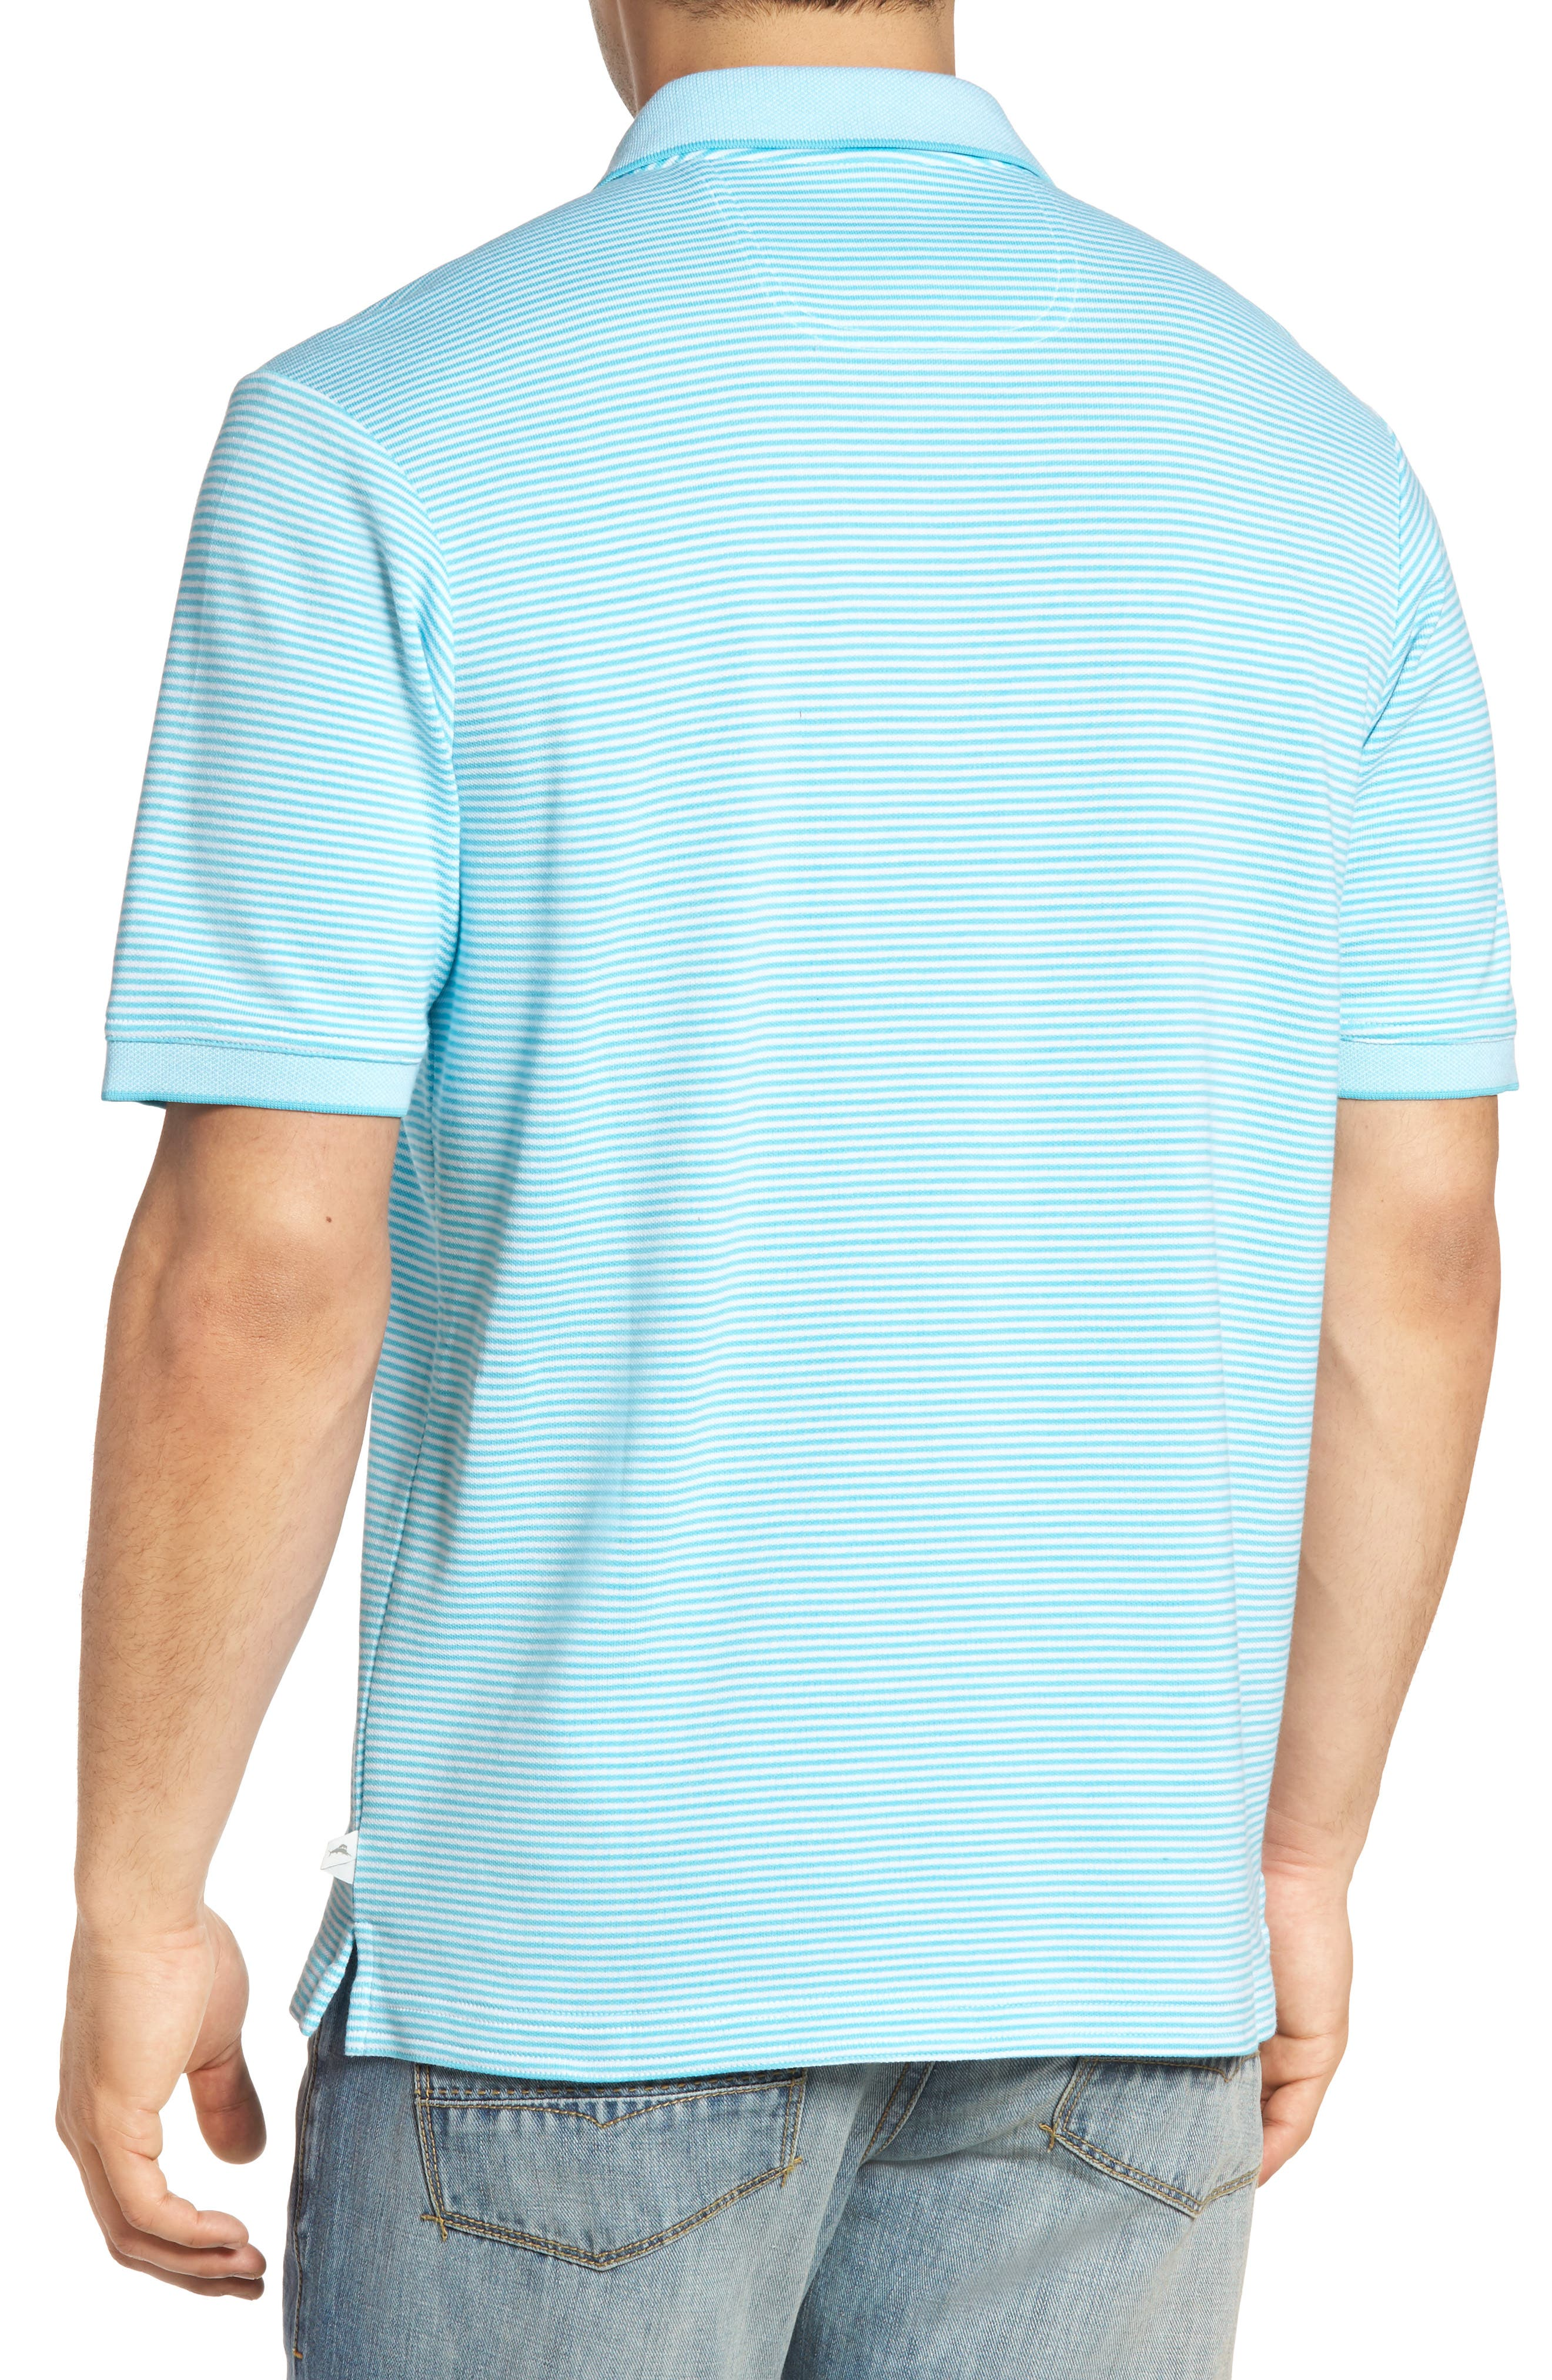 Alternate Image 2  - Tommy Bahama Emfielder Stripe Pima Cotton Blend Polo